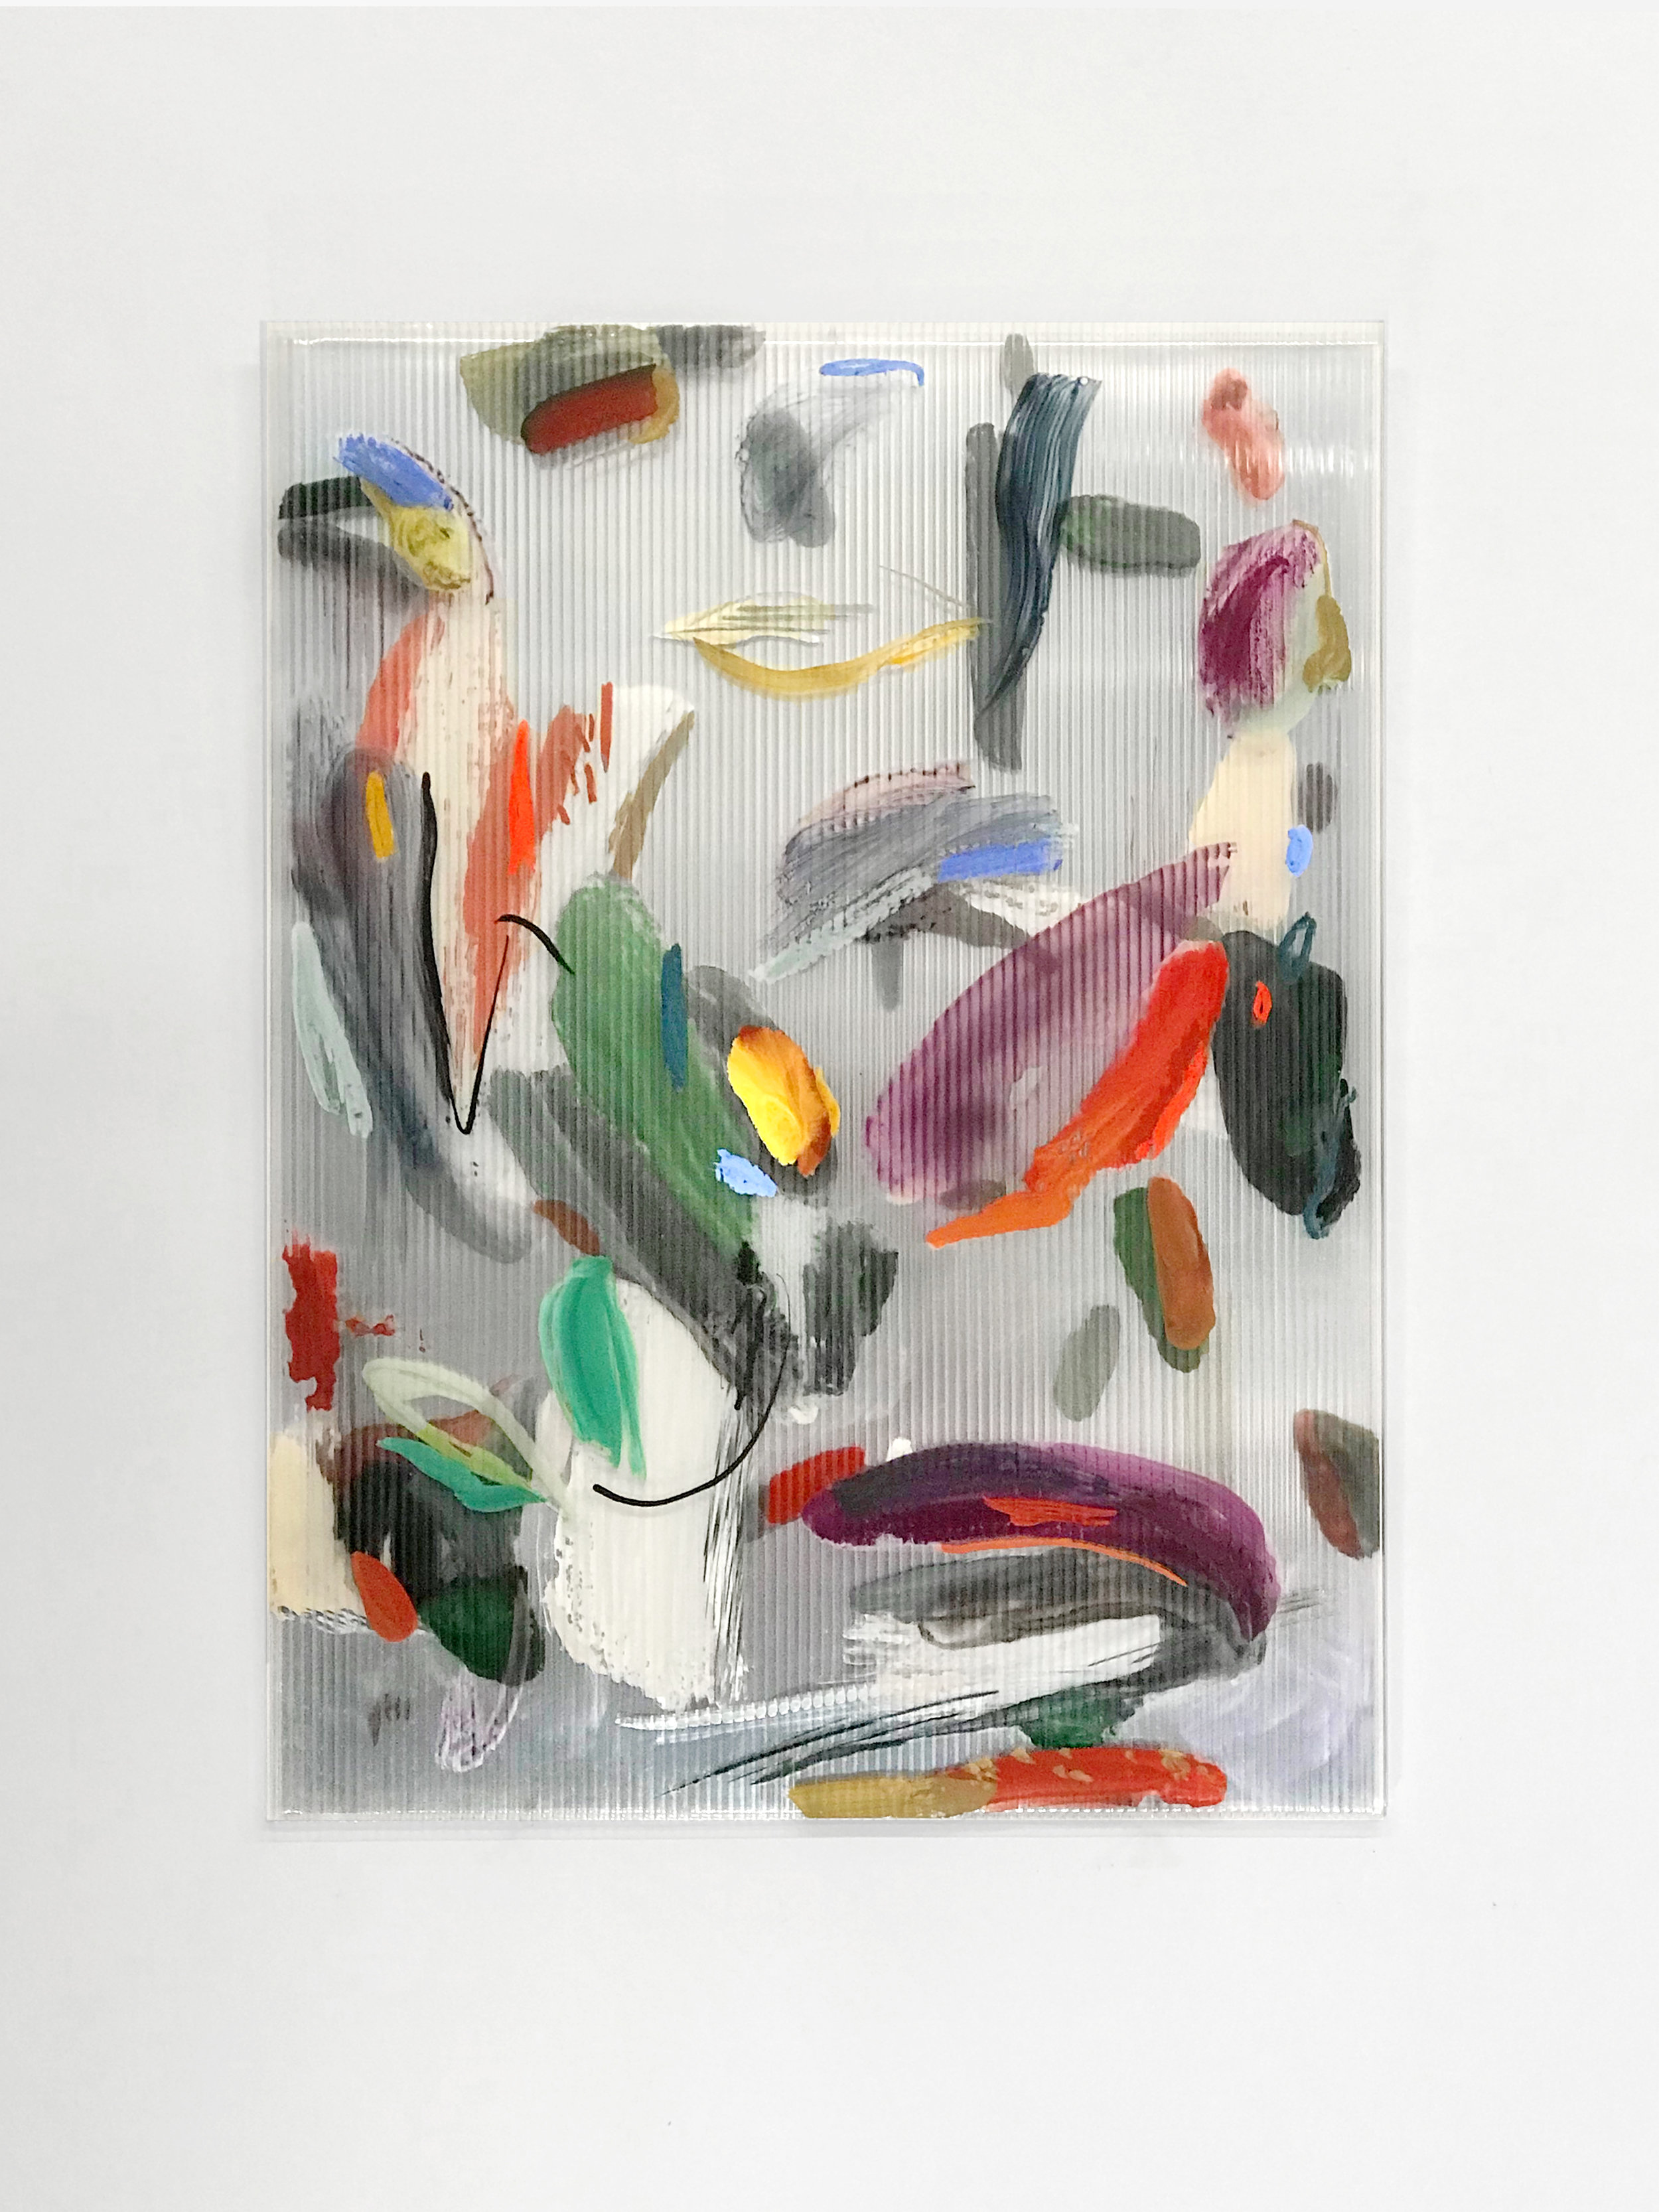 Galerie Isabelle Gounod, 04.25 -05.25